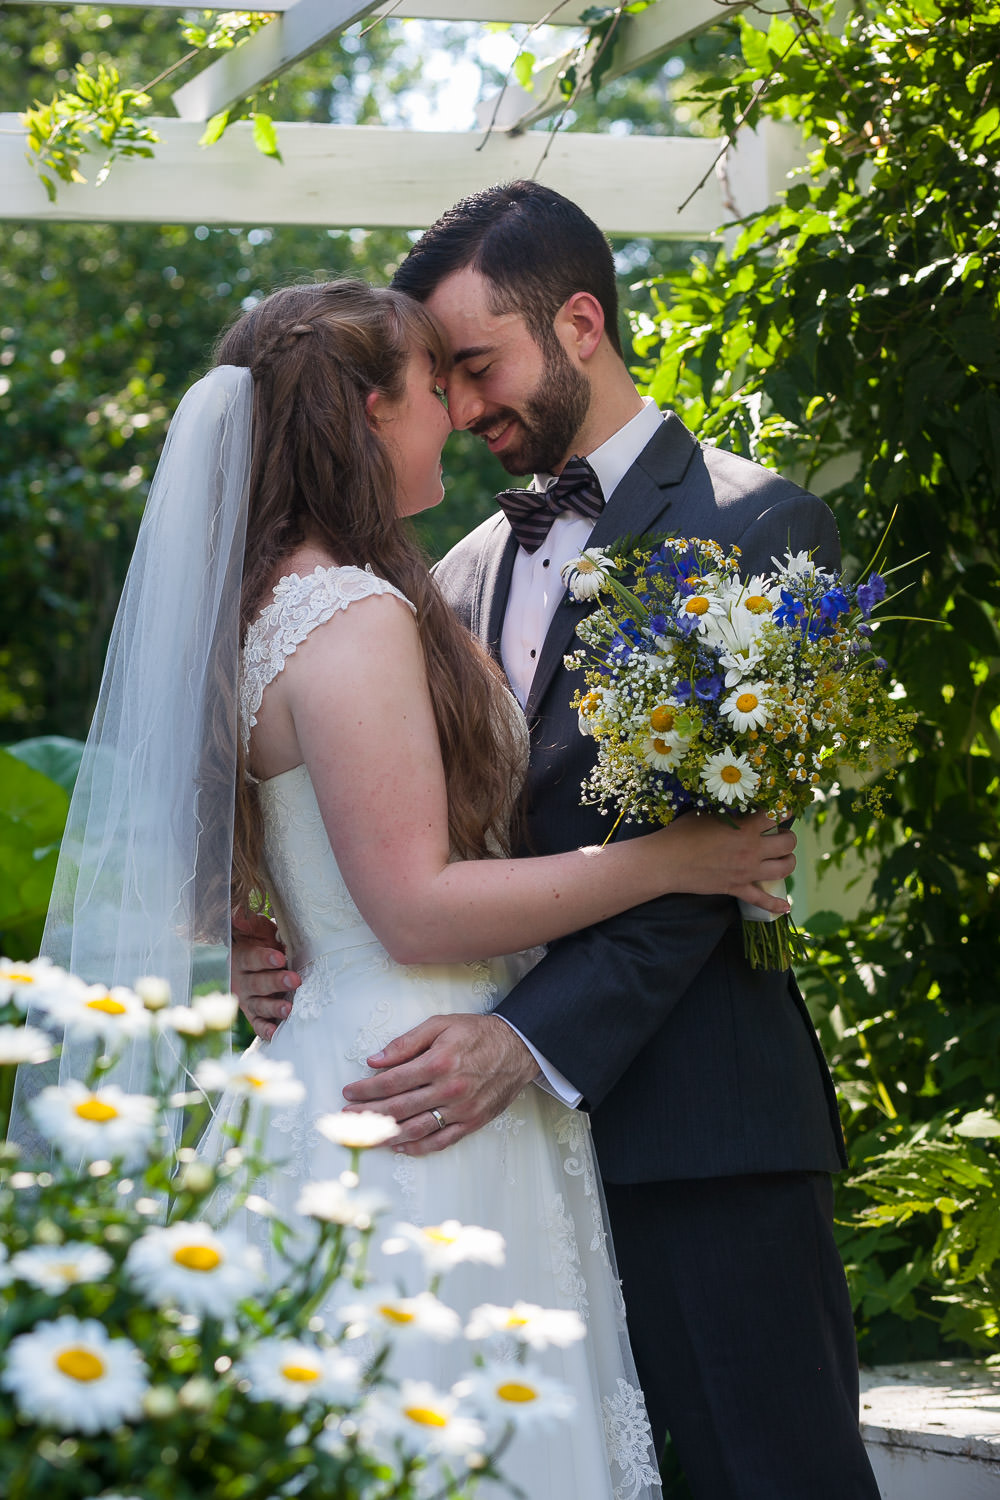 hartmans herb farm weddings, gorgeous moments of a newly wed couple, bride and groom romantic and artistic portraits